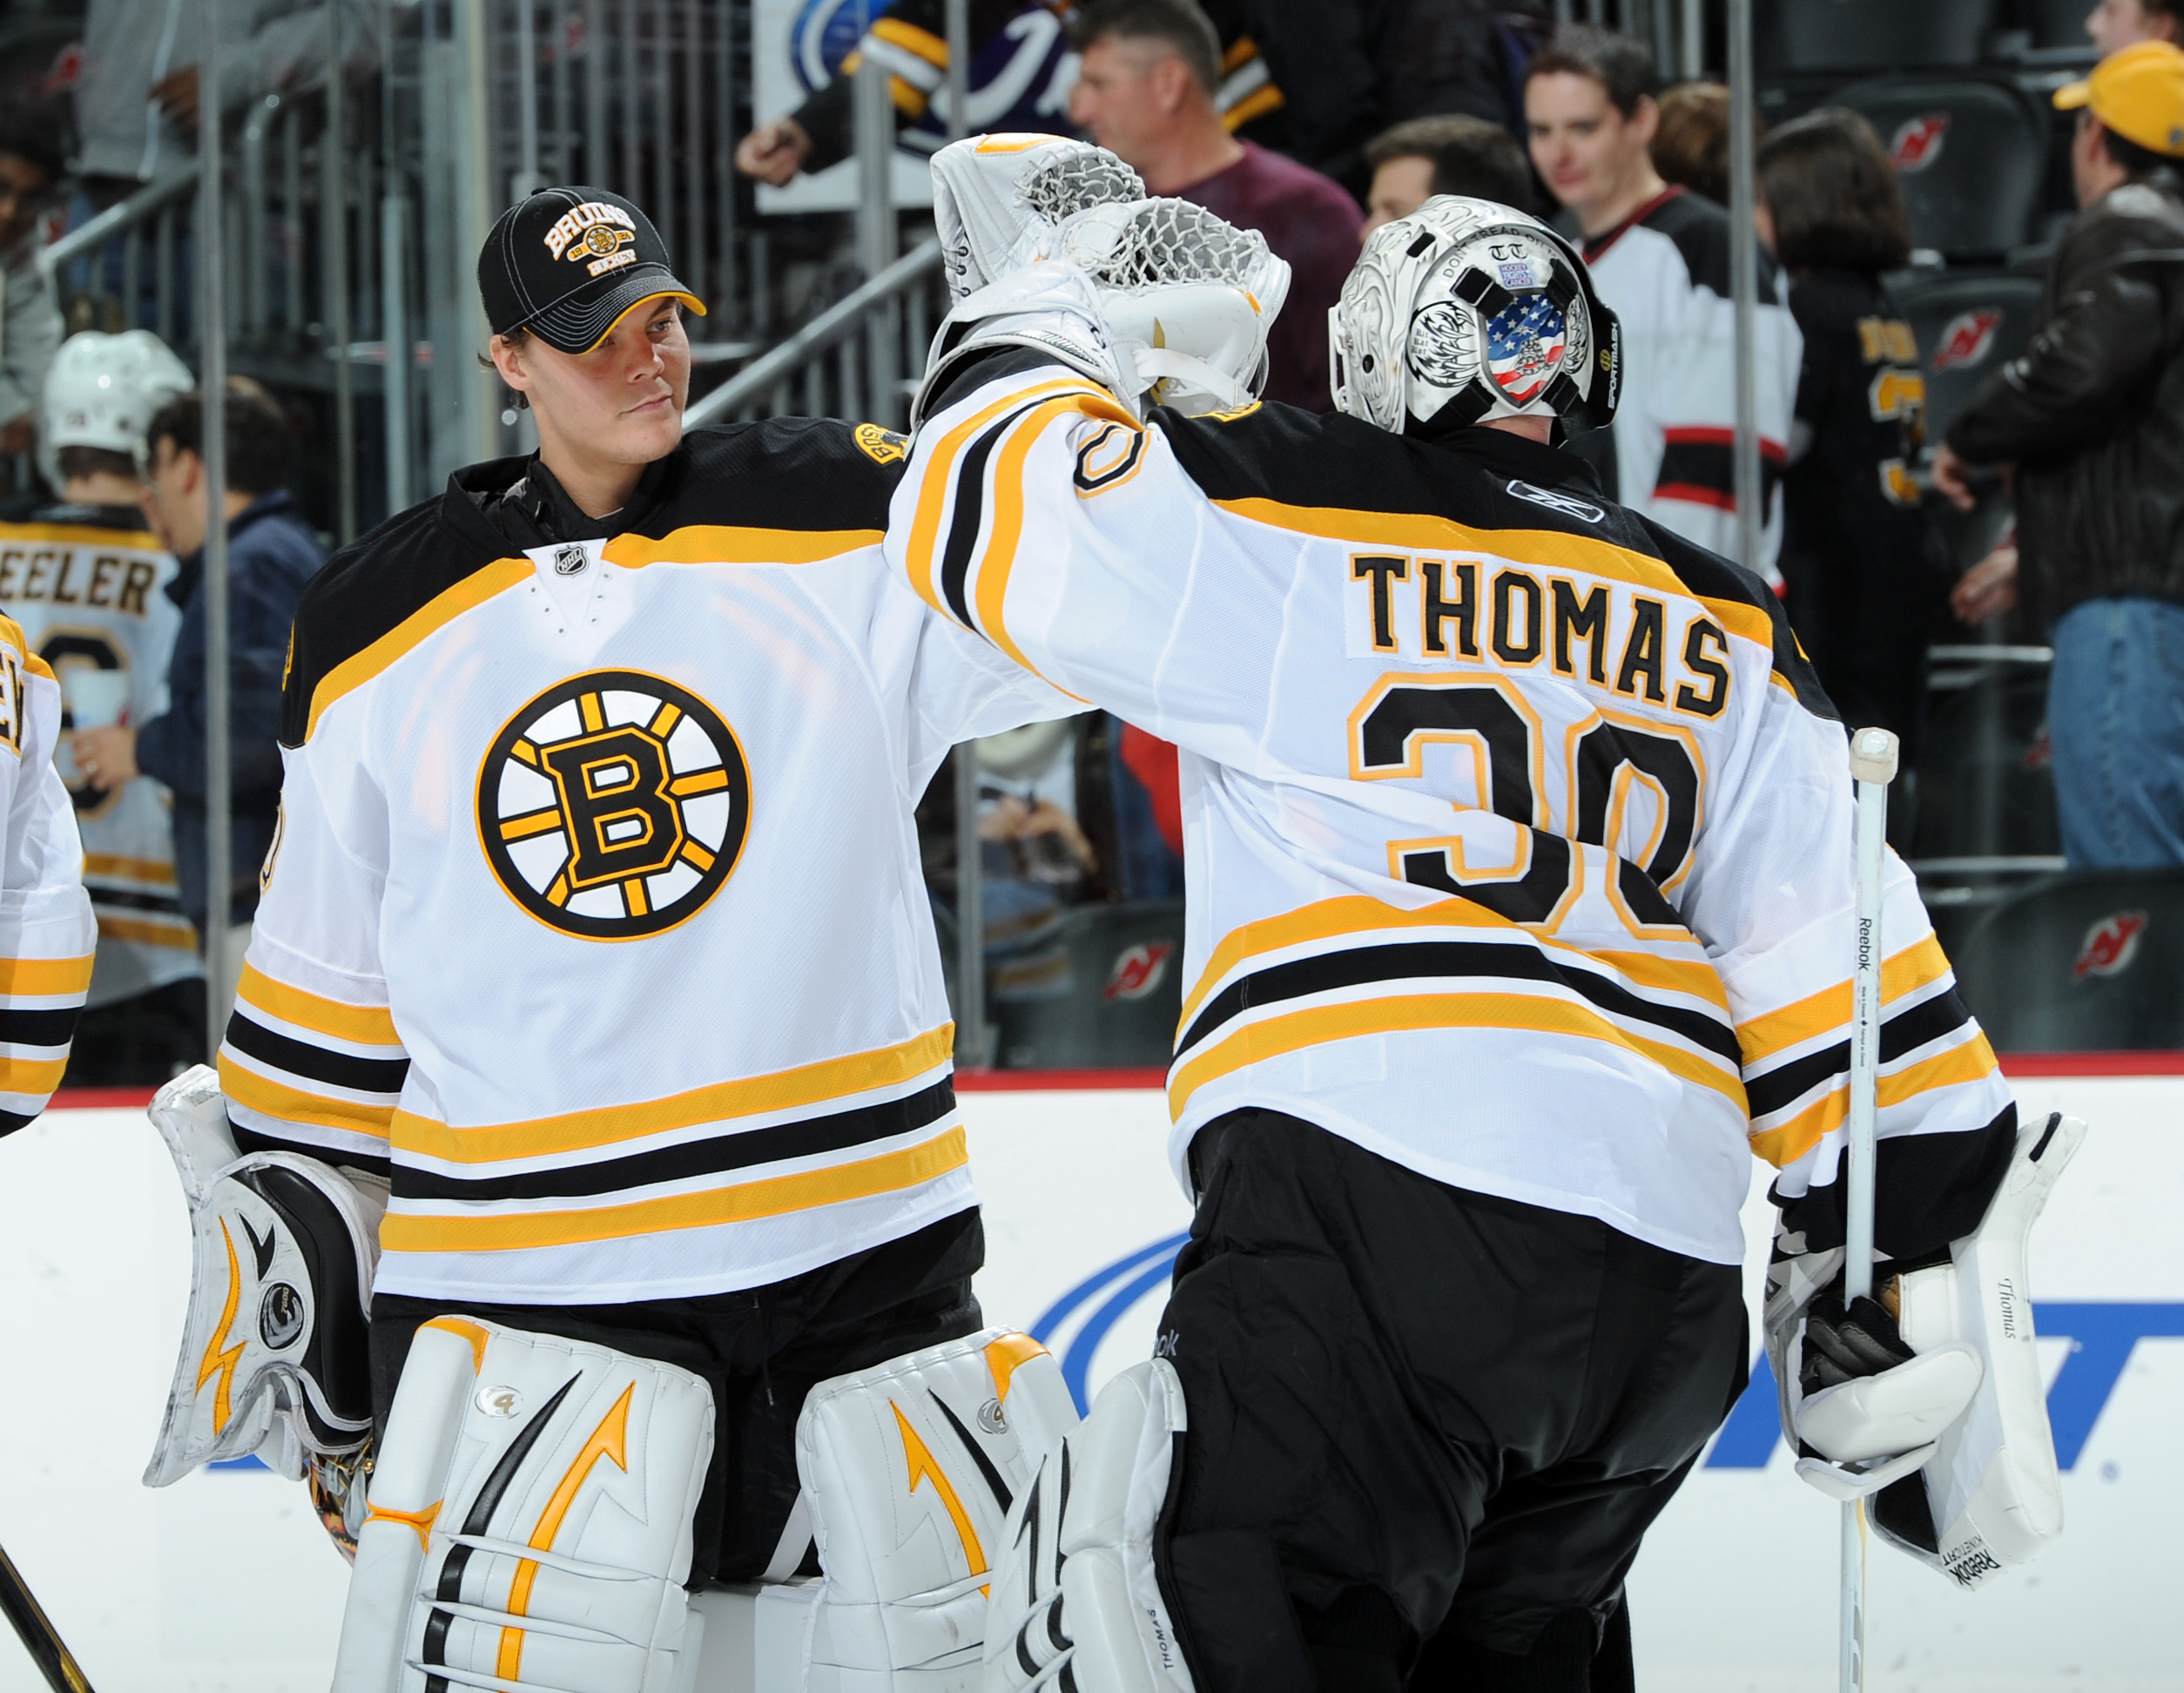 Tim Thomas Tuukka Rask Ranking The Goalie Depth Of All 30 Nhl